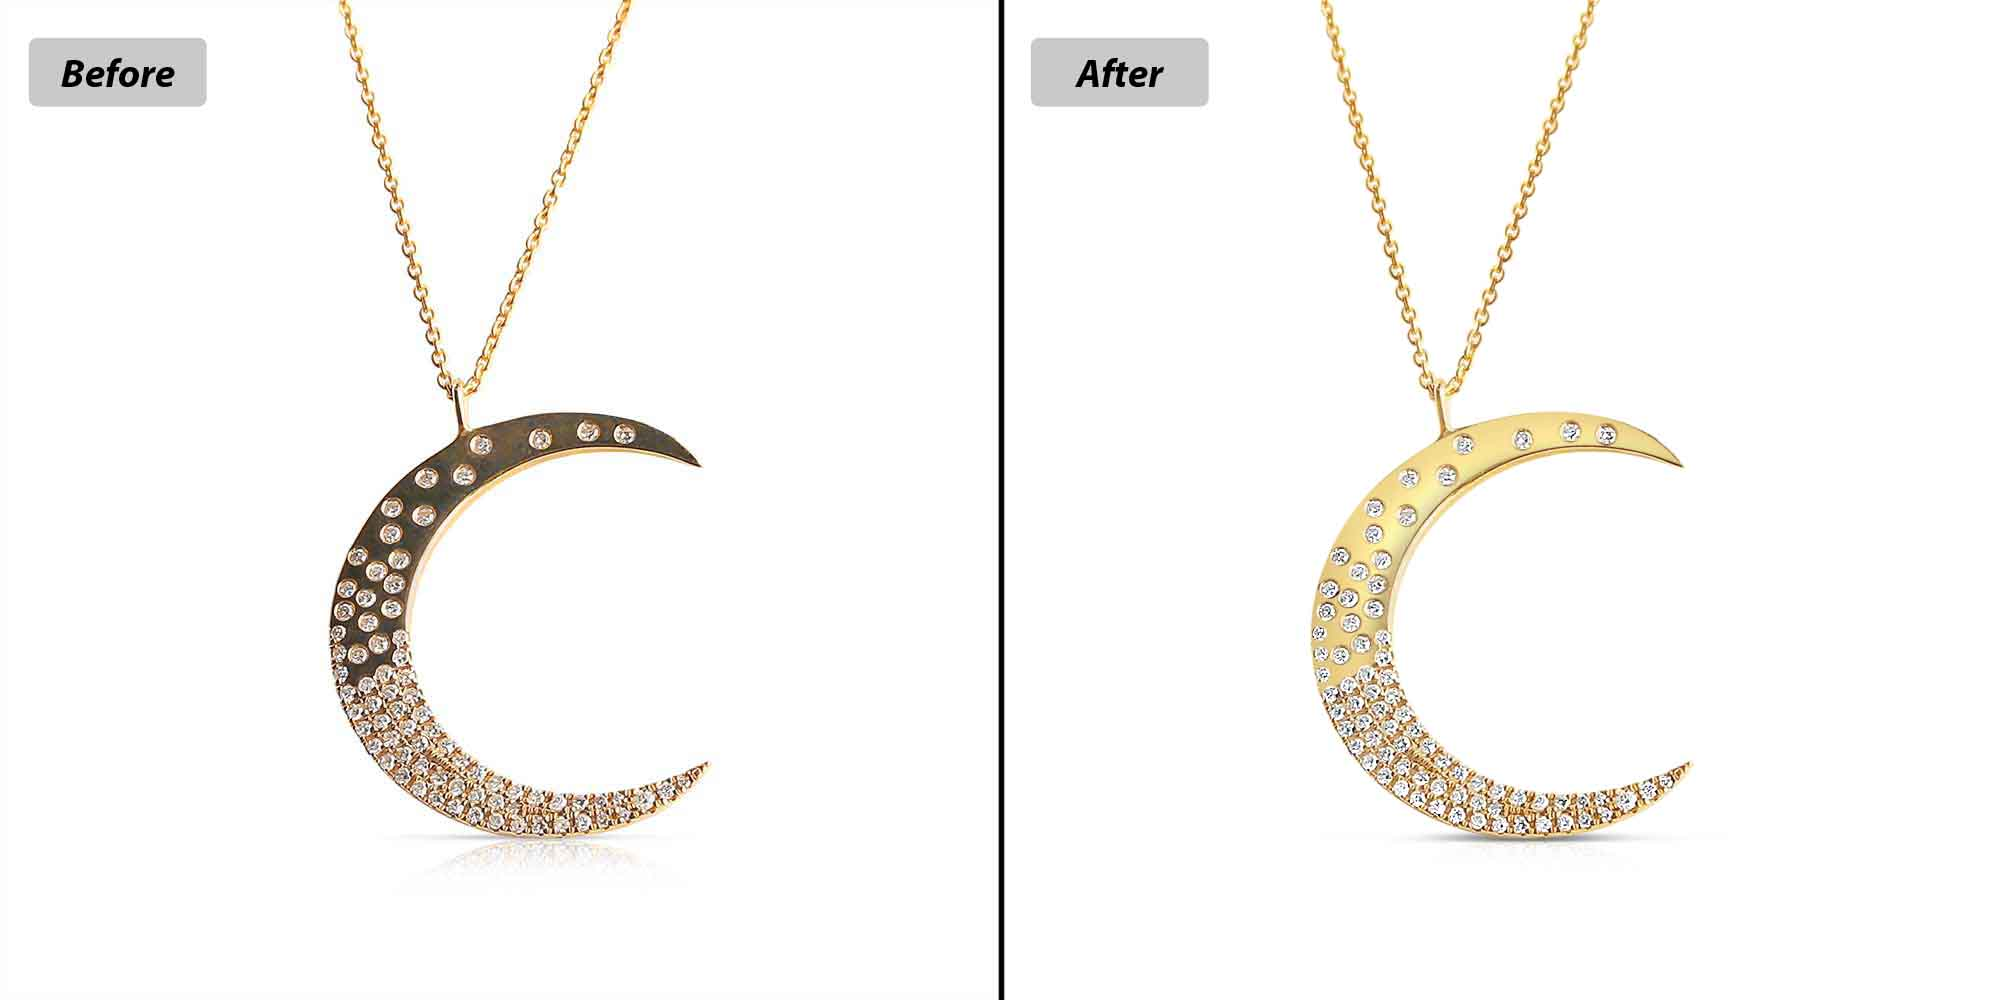 Clipping Charm_Jewellery retouch 0922